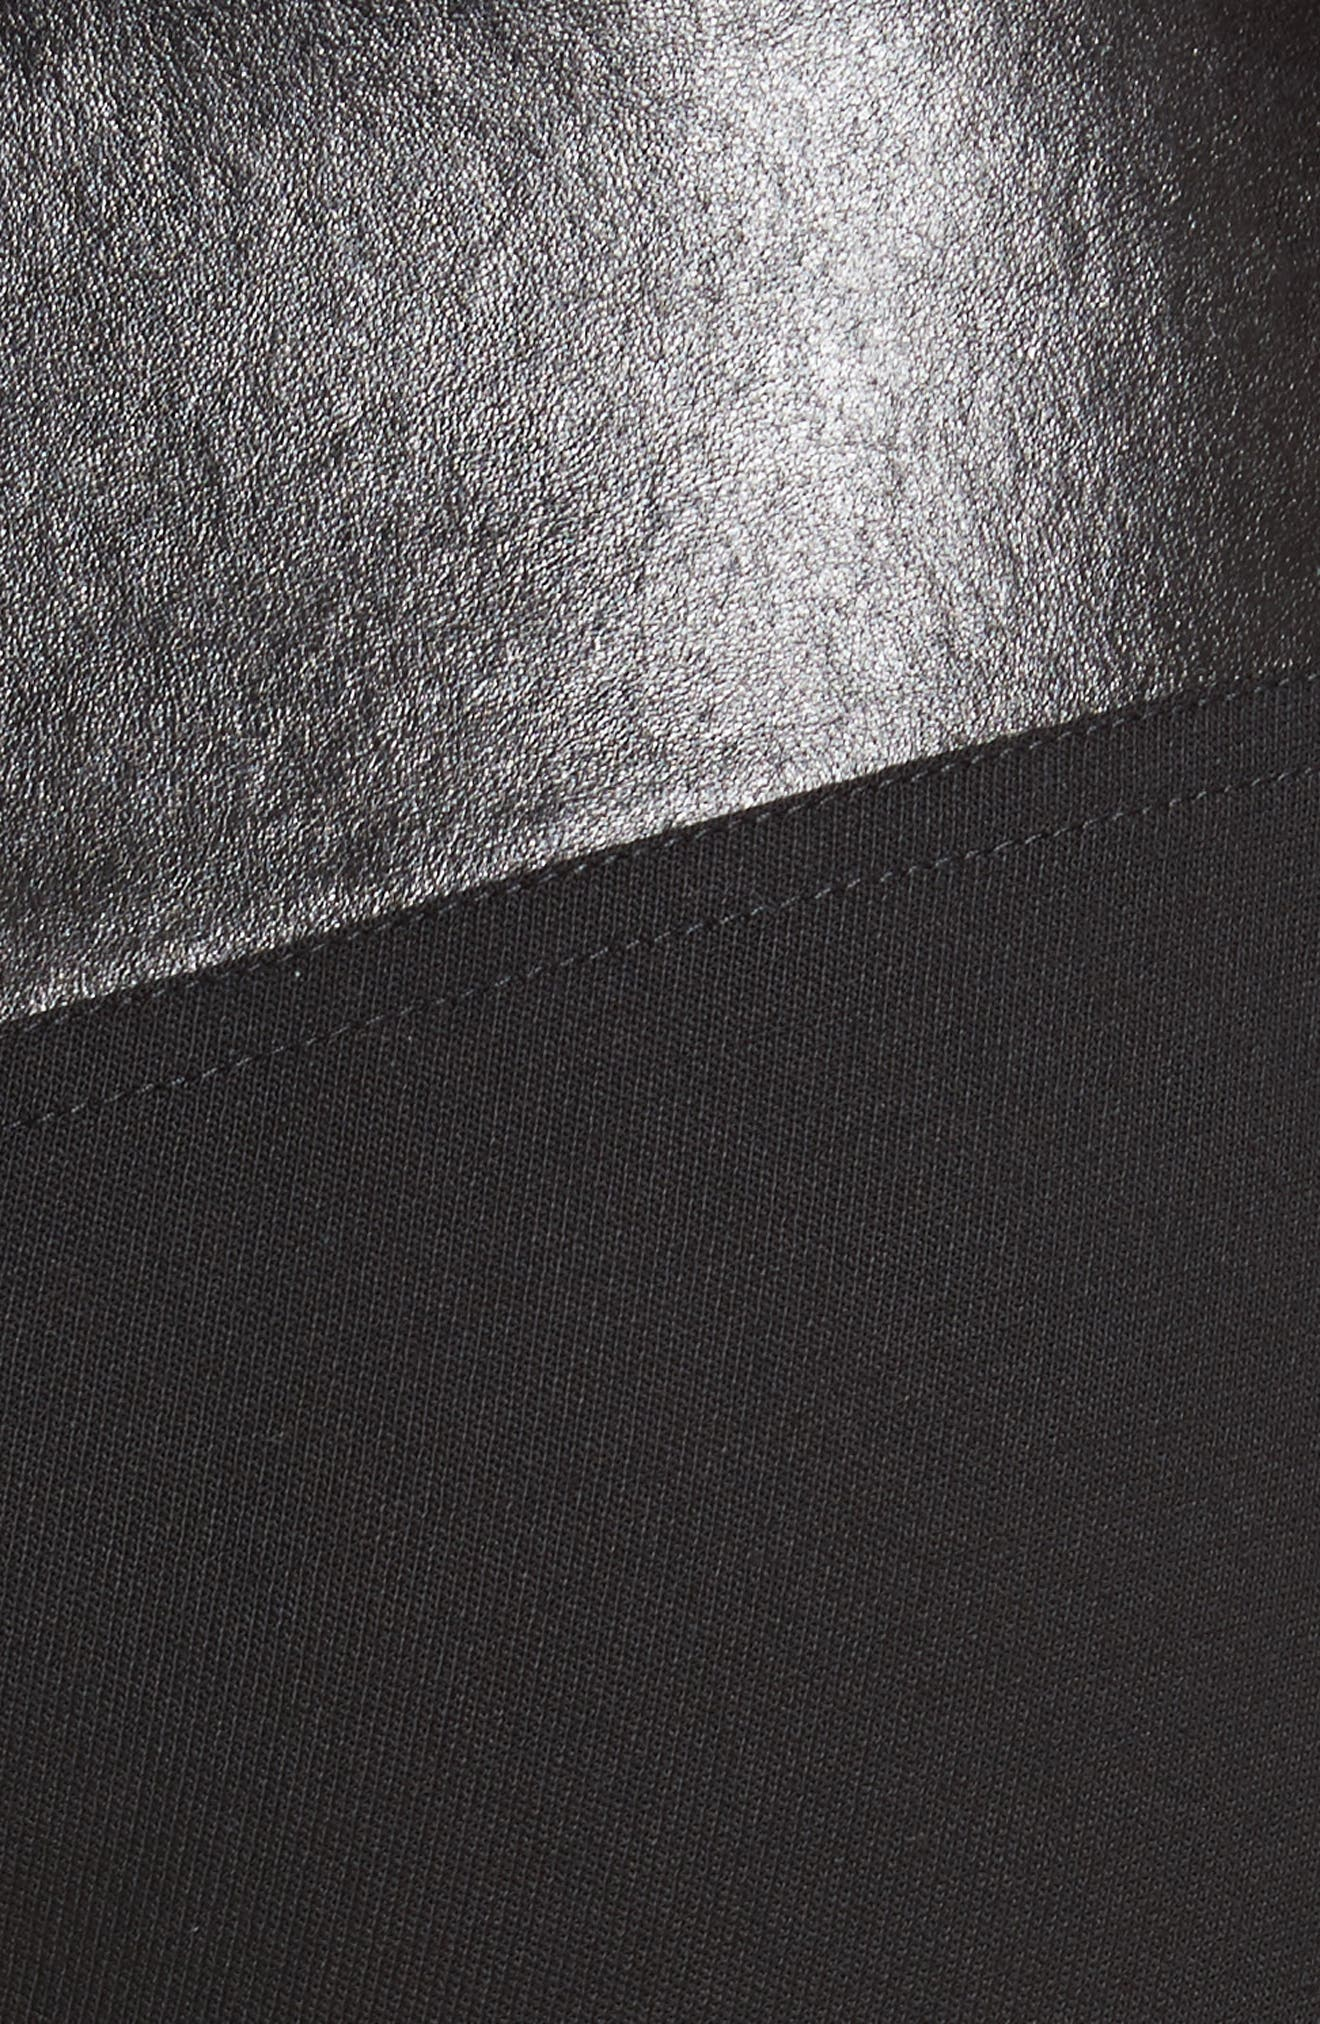 Textured Suiting & Leather Garter Flare Pants,                             Alternate thumbnail 5, color,                             Black